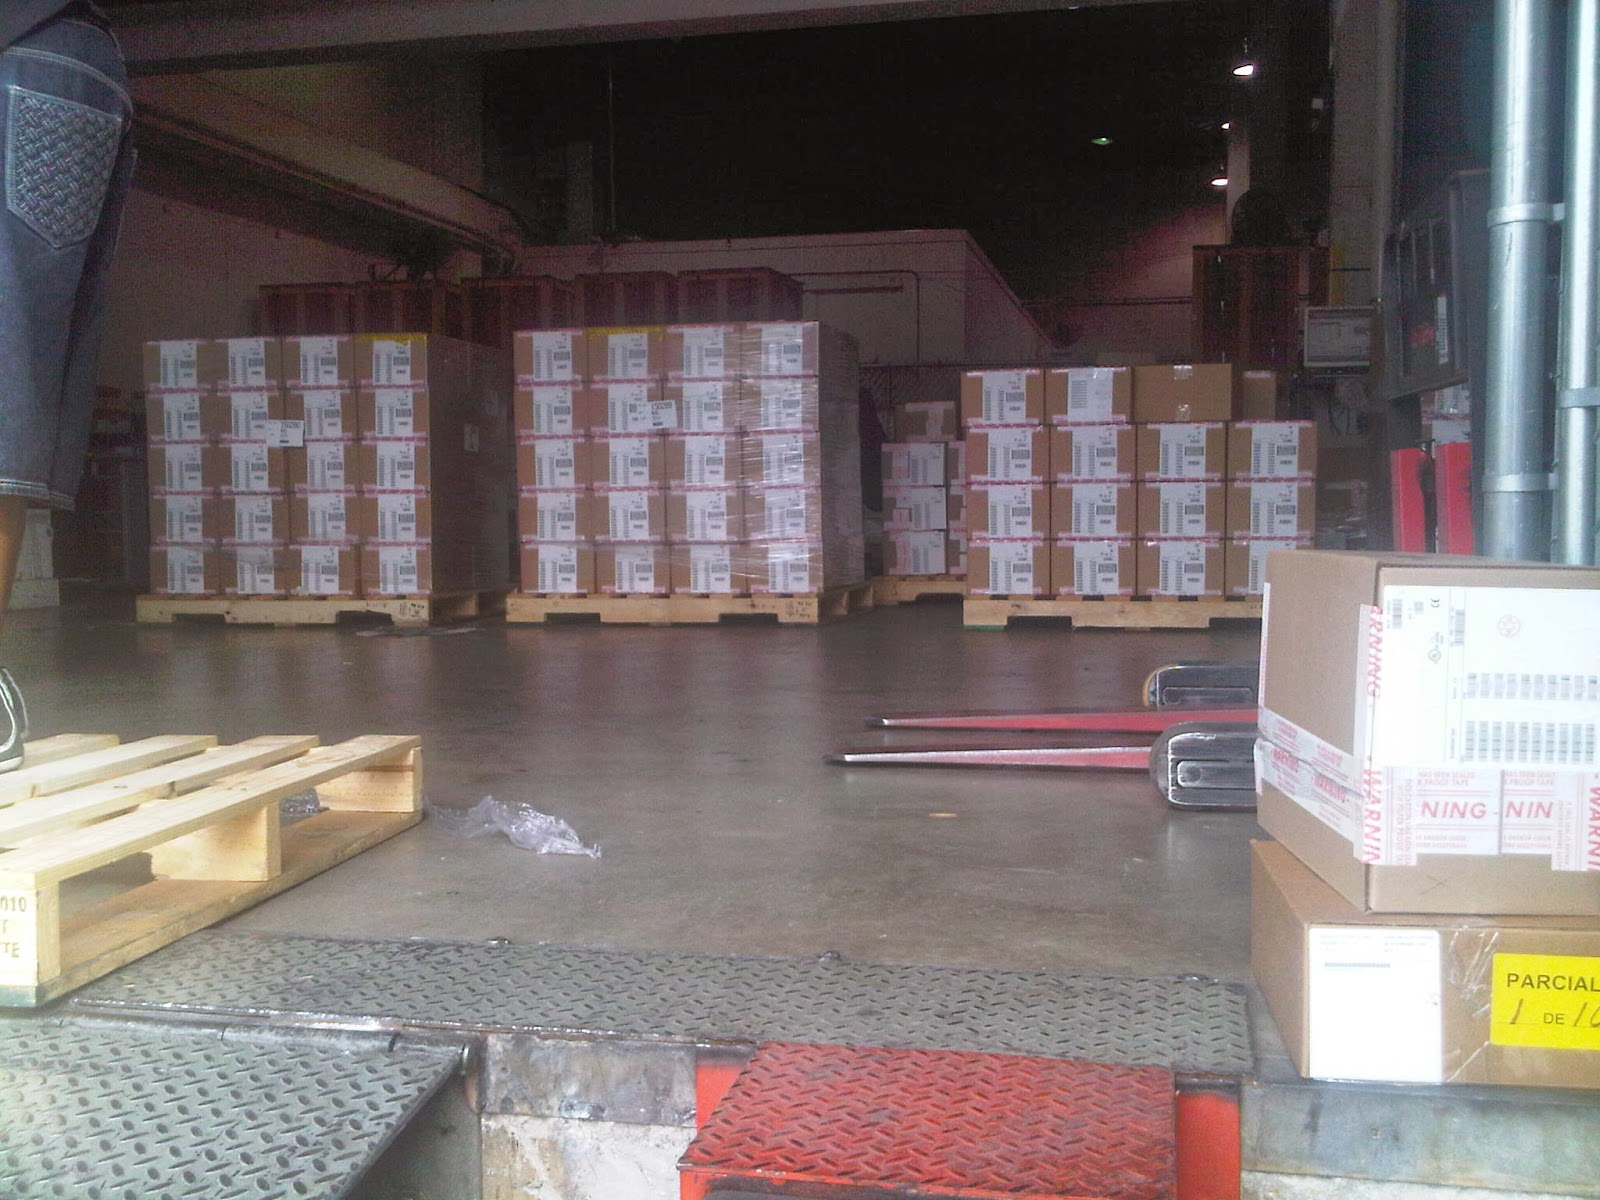 wholesale supplier, Apple iPad, fly and buy, physical warehouse,